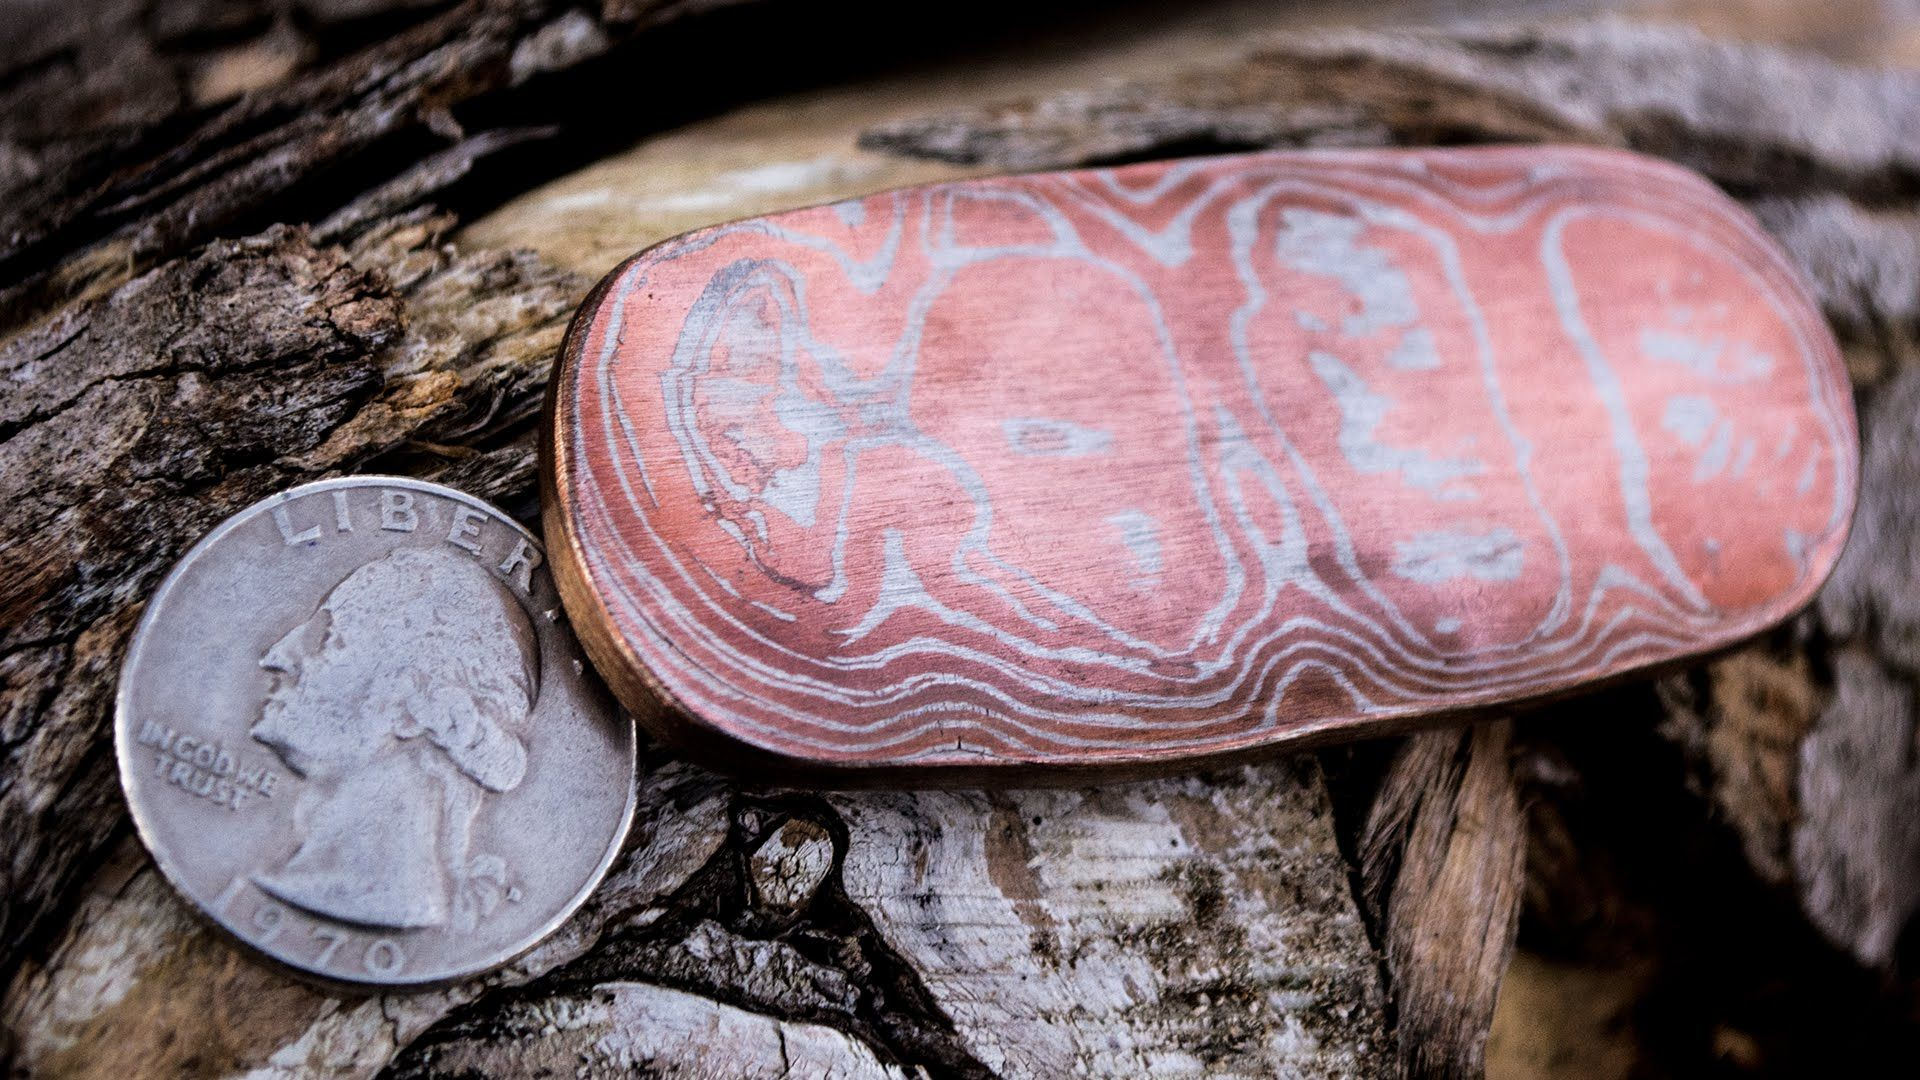 How To Forge Copper and Nickel Mokume Gane With Coins | JEWELRY ...